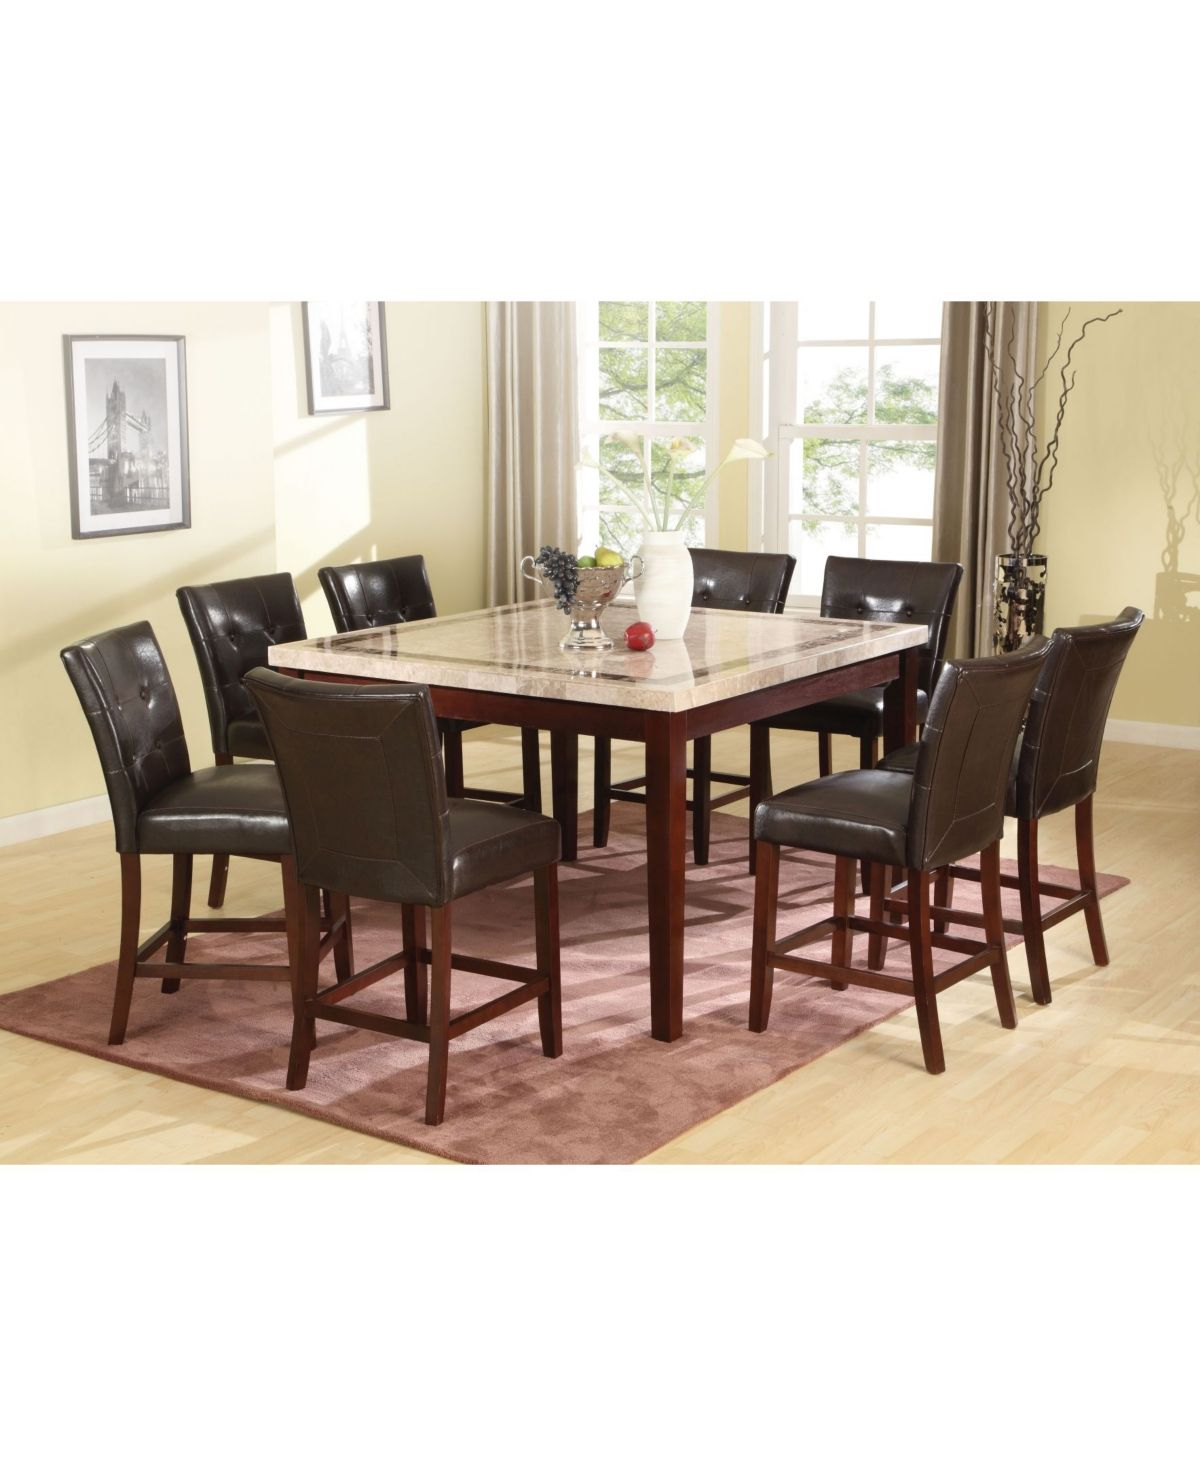 Danville Counter Height Chair Set Of 2 Brown Counter Height Dining Table Set Counter Height Dining Table Dining Table